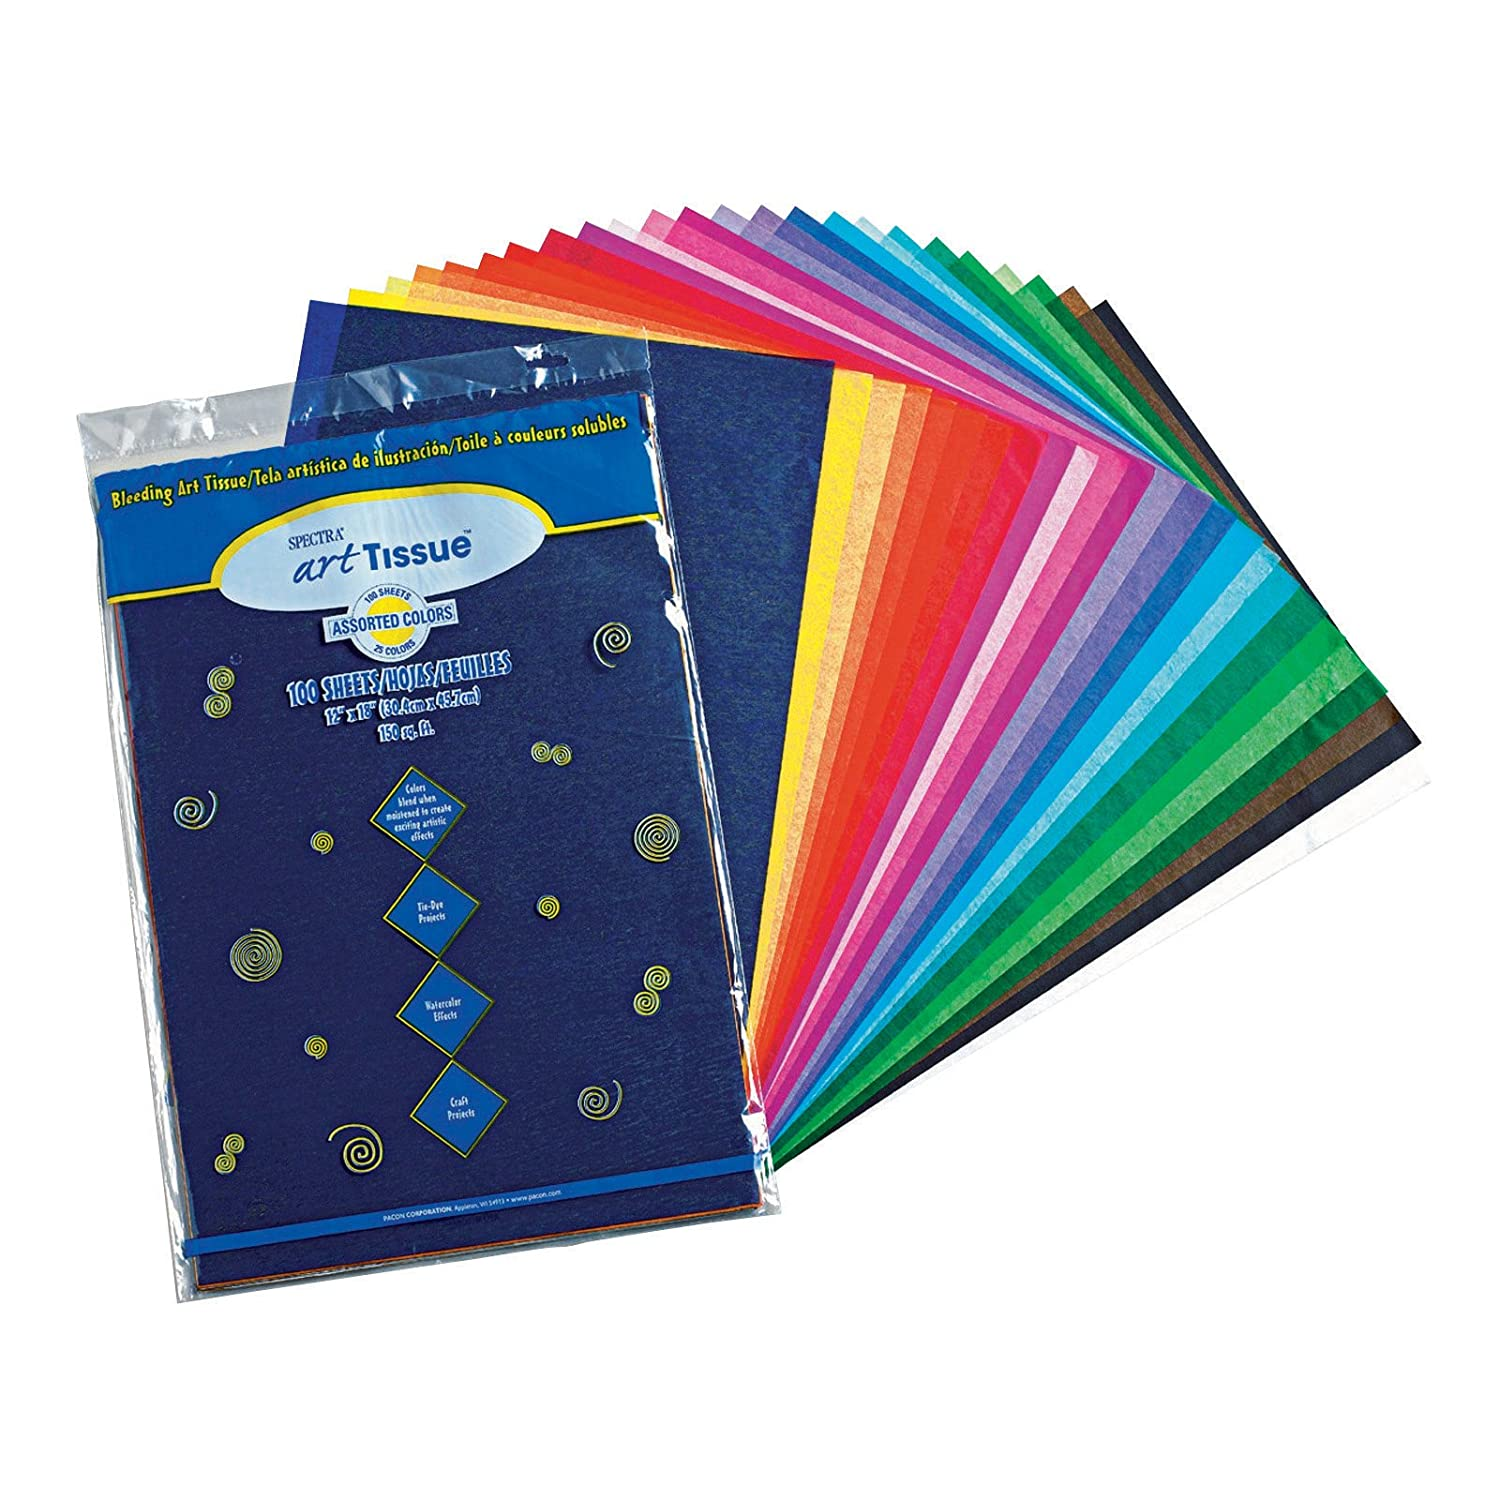 Pacon Spectra(R) Assorted Color Tissue Pack, 12